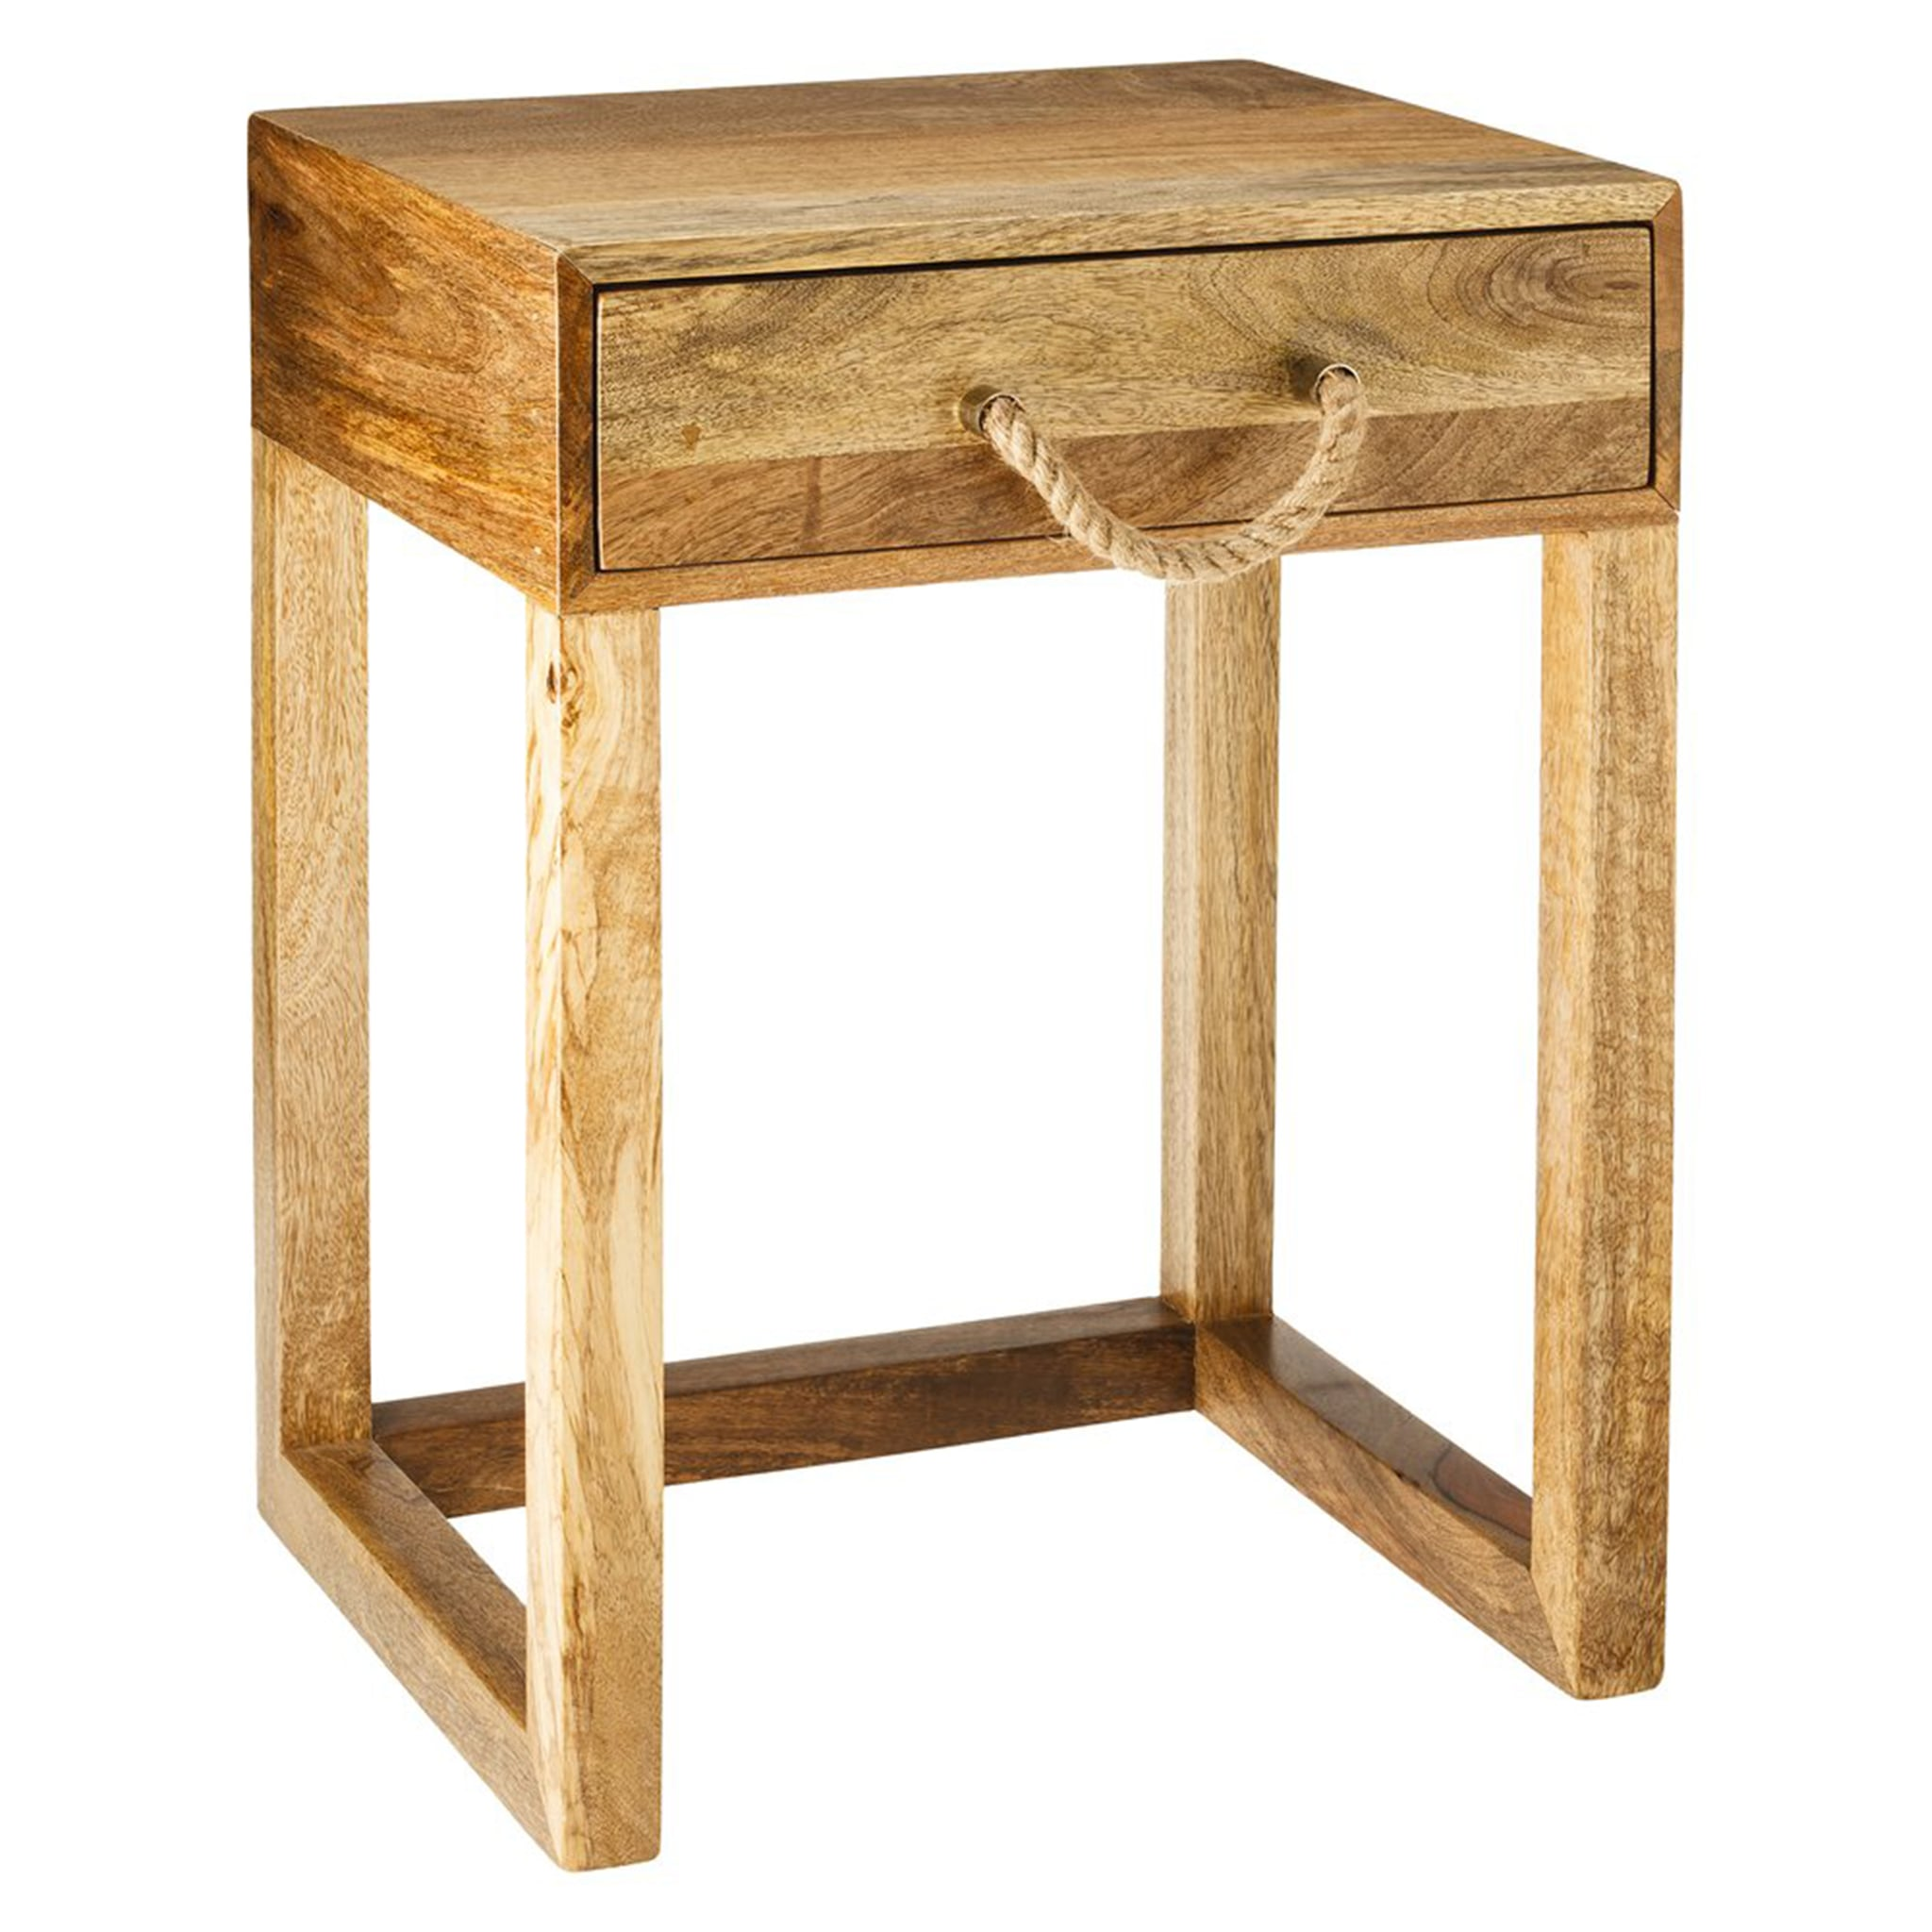 the natural wood tones and rope handle on this accent table 90 why target 39 s latest. Black Bedroom Furniture Sets. Home Design Ideas